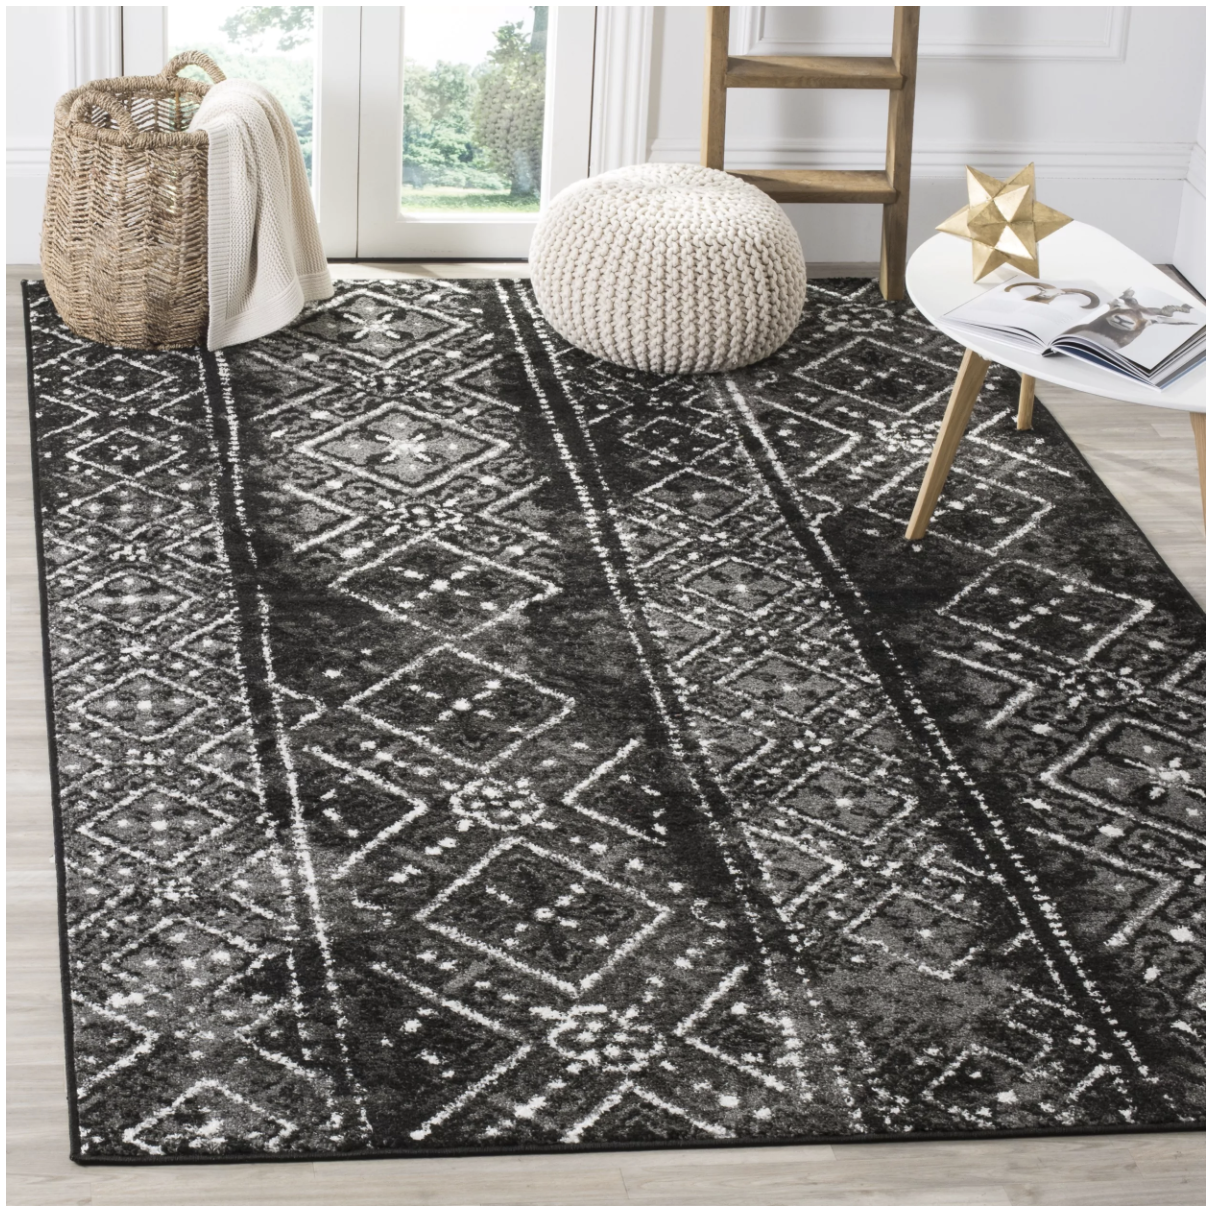 Black and White Southwestern Flair Rug